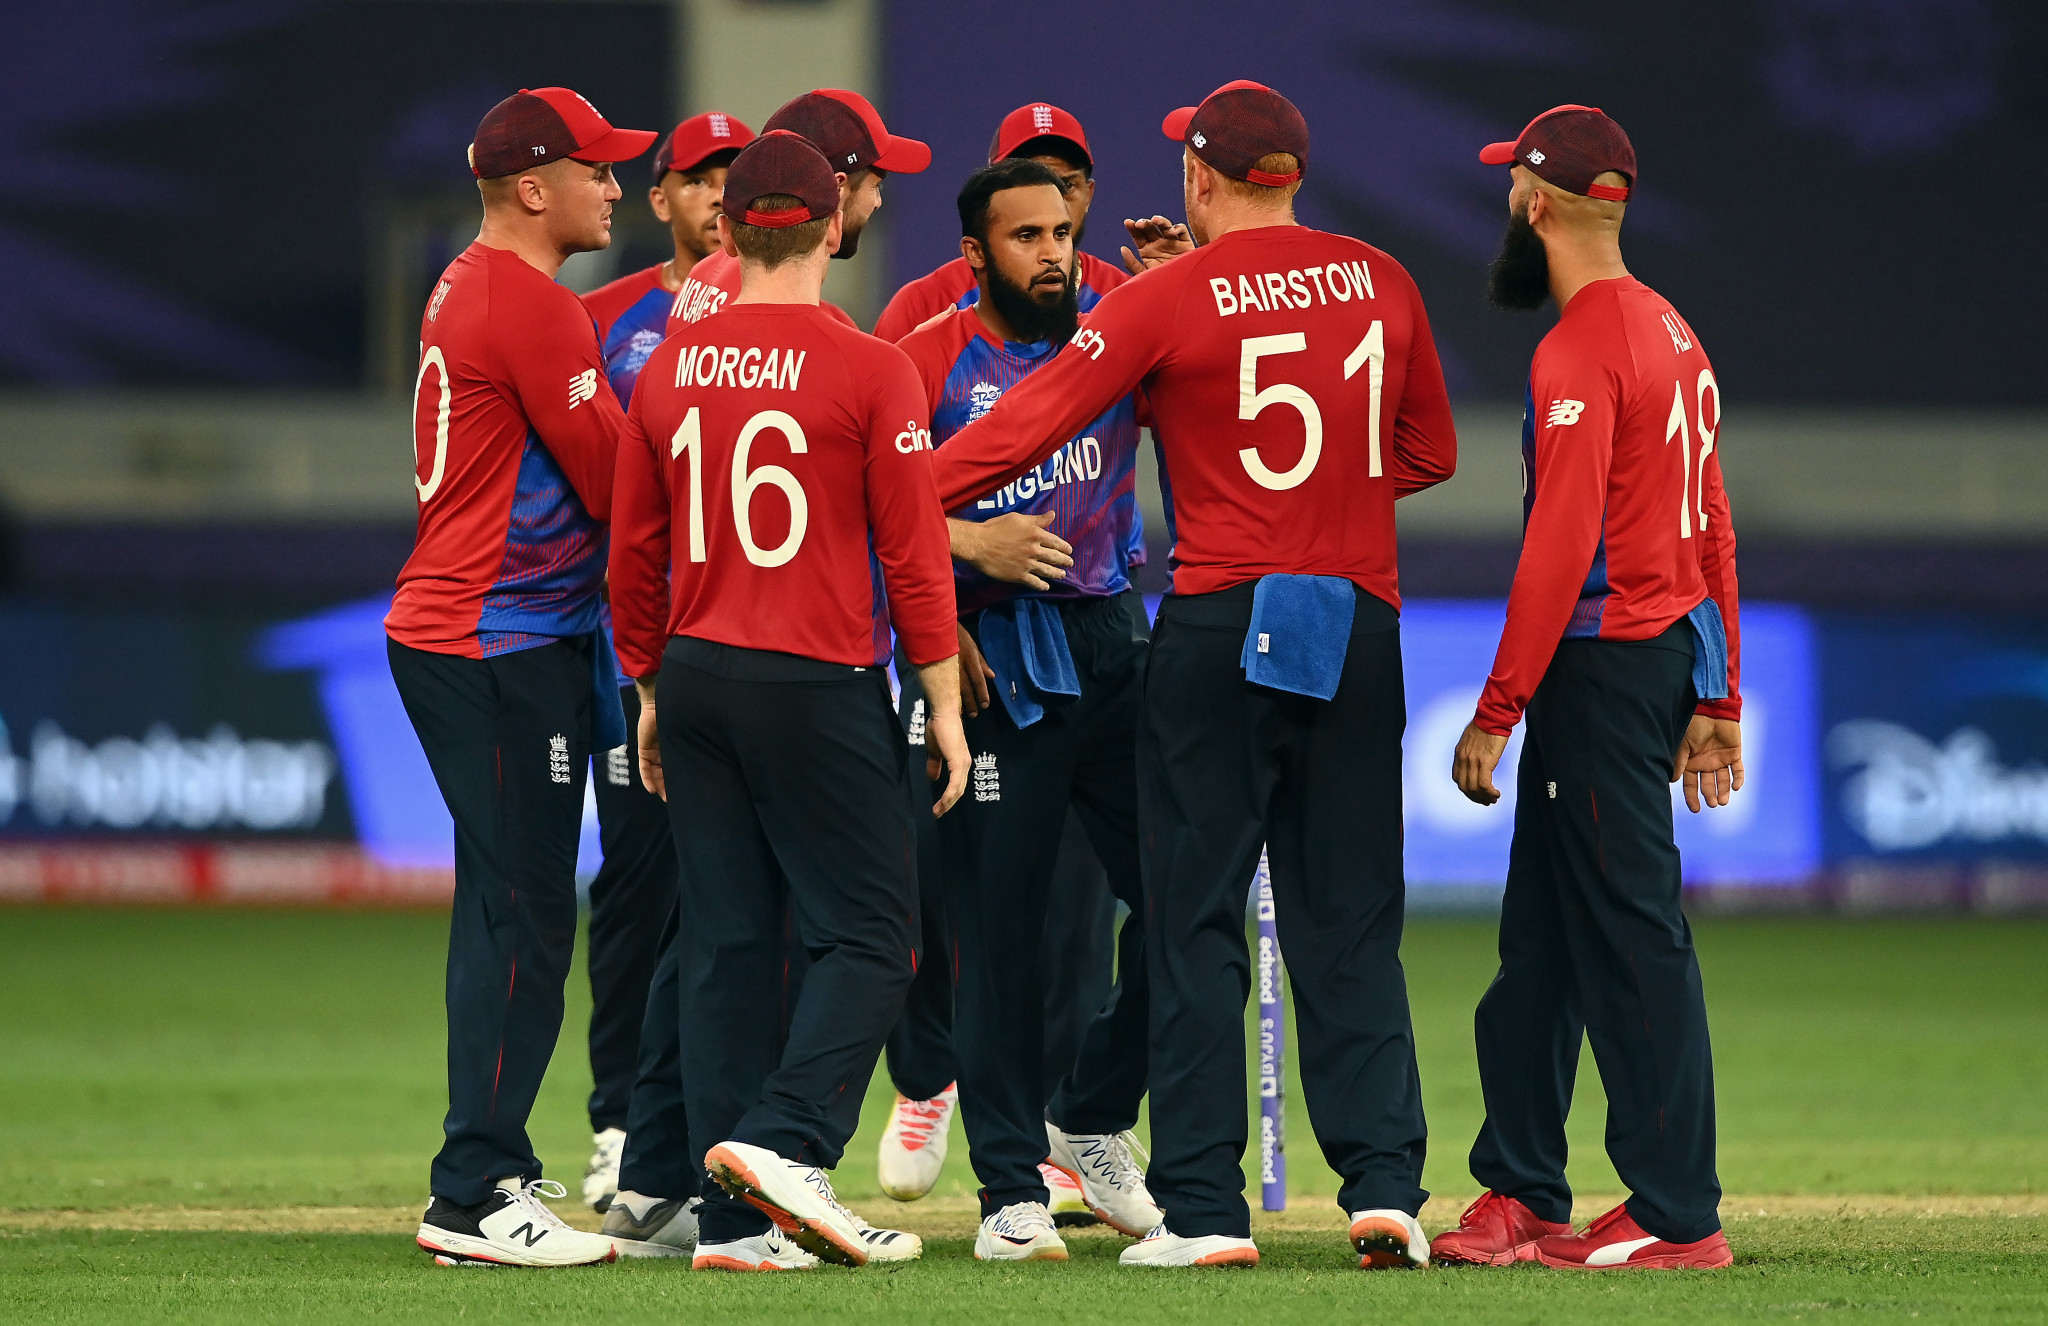 Holders West Indies suffer big defeat as T20 World Cup Super12 stage begins